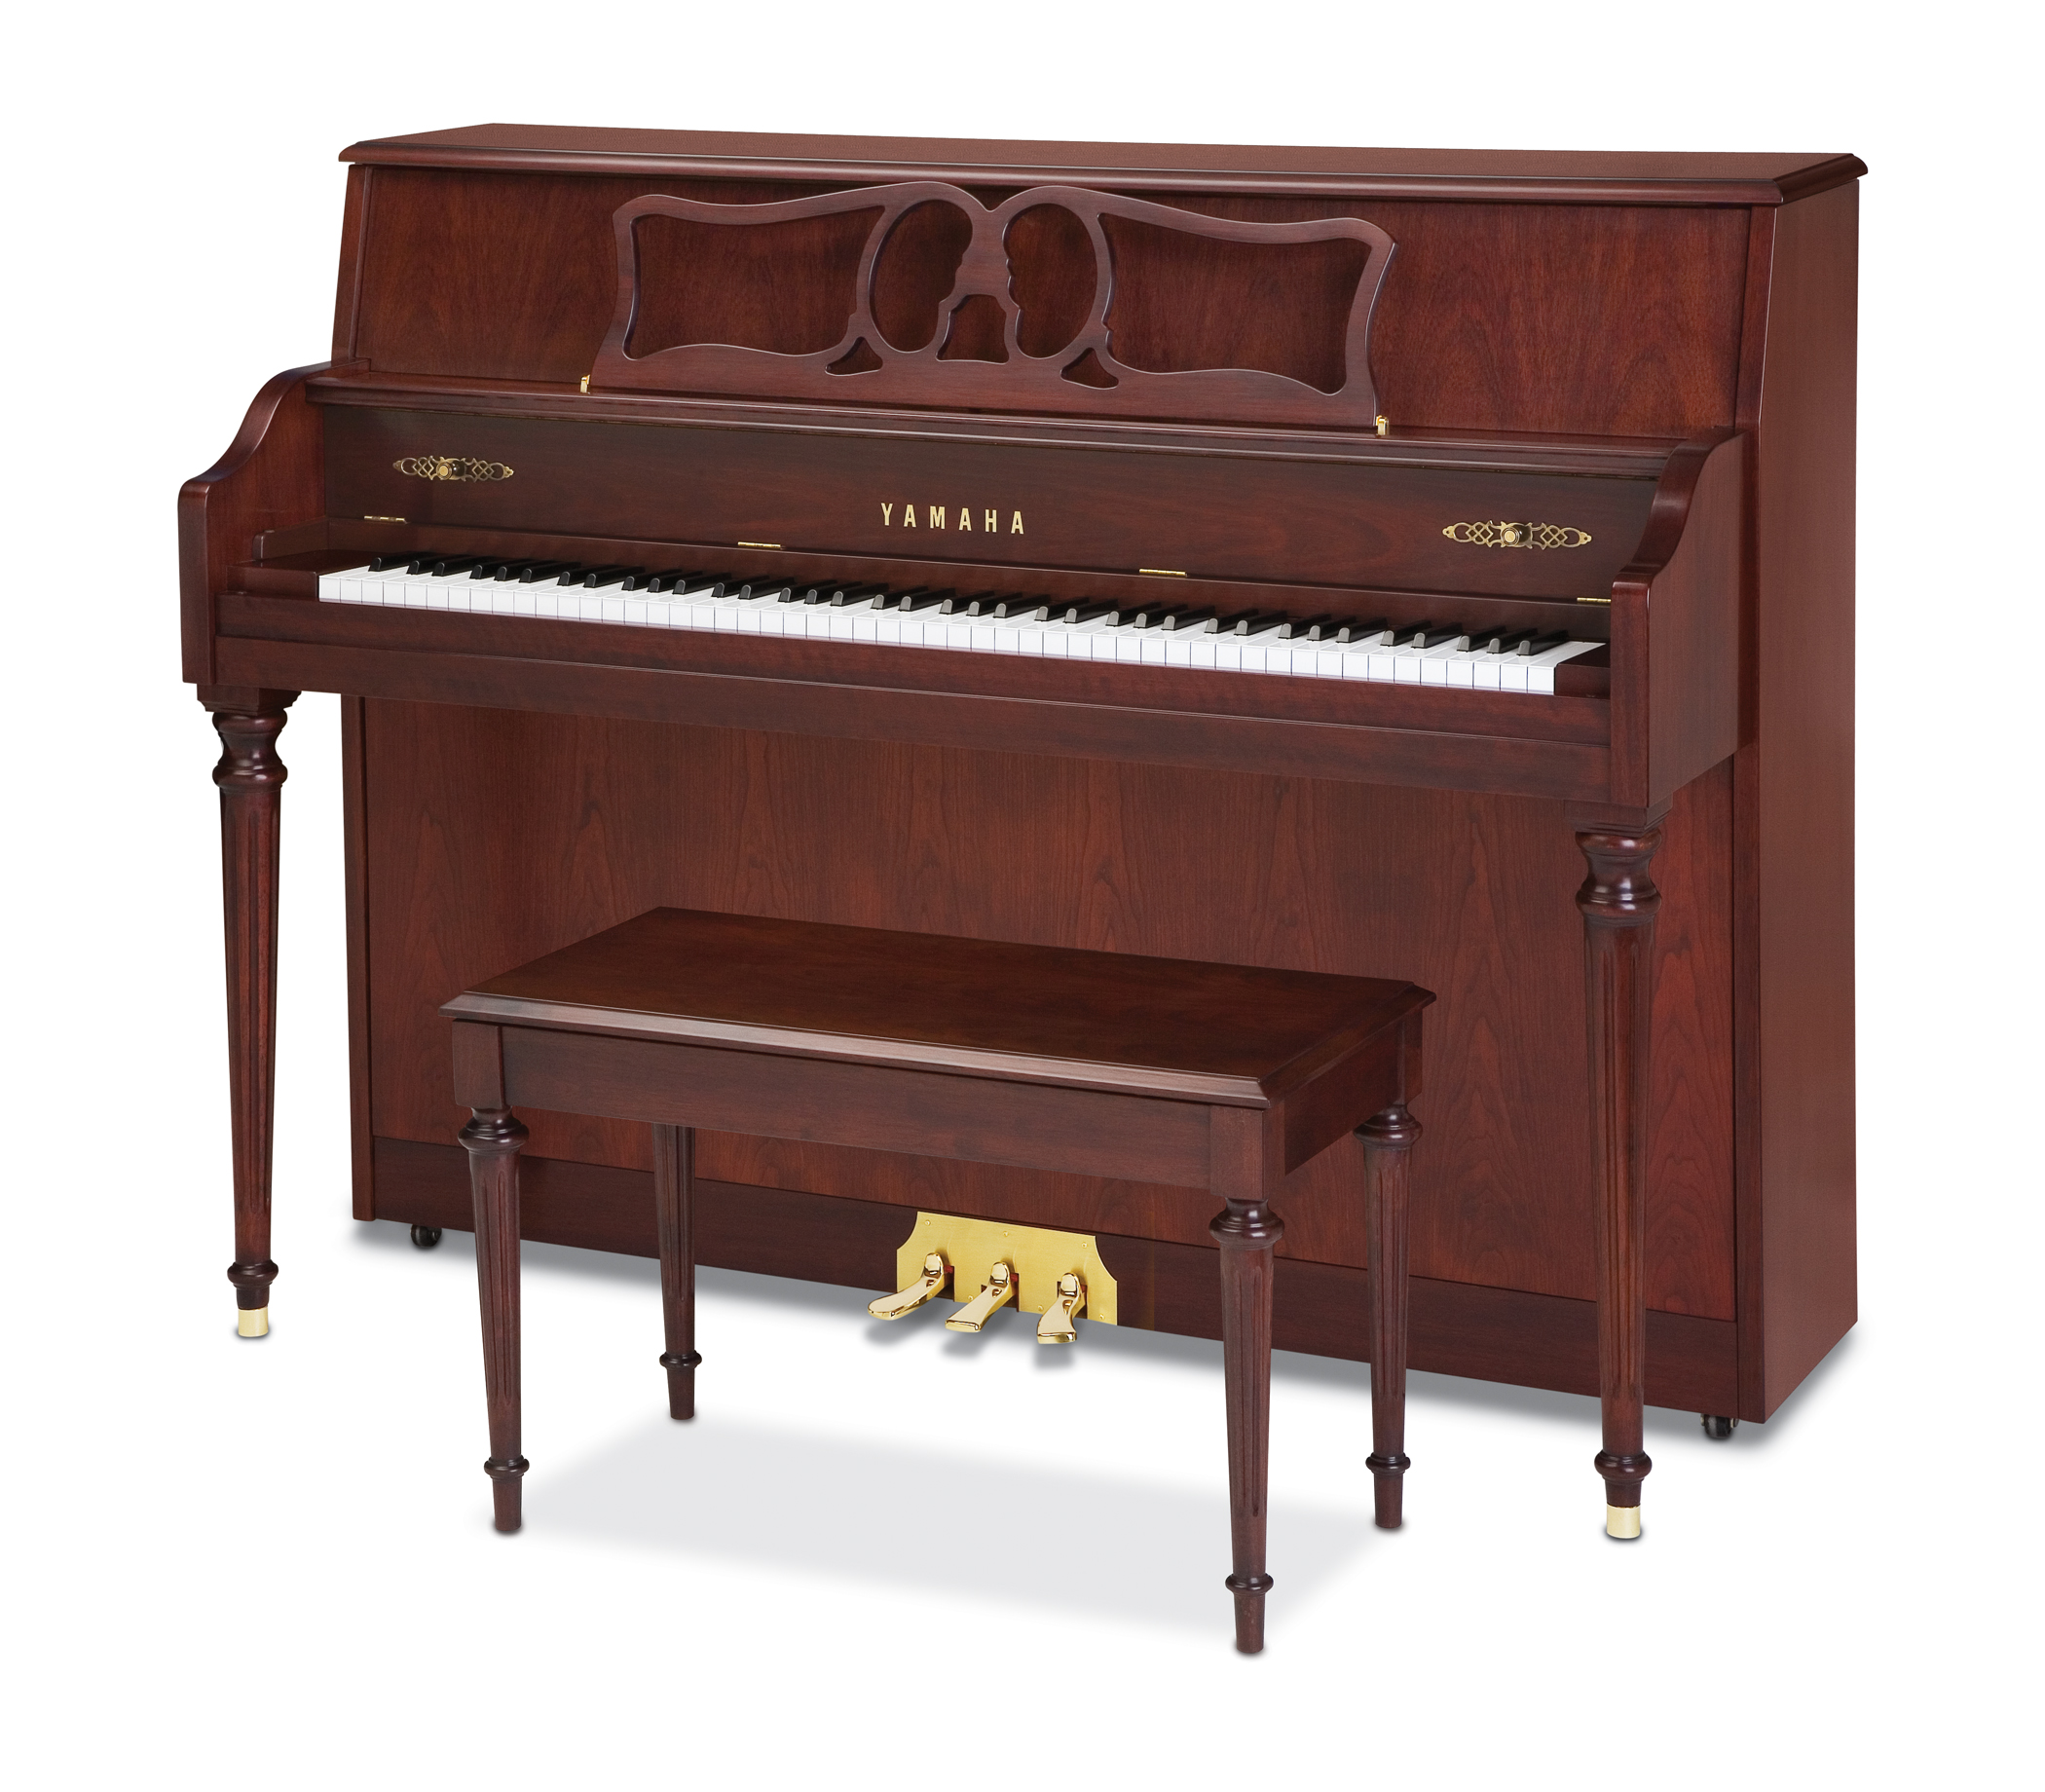 Yamaha Disklavier Player Pianos Upright - image